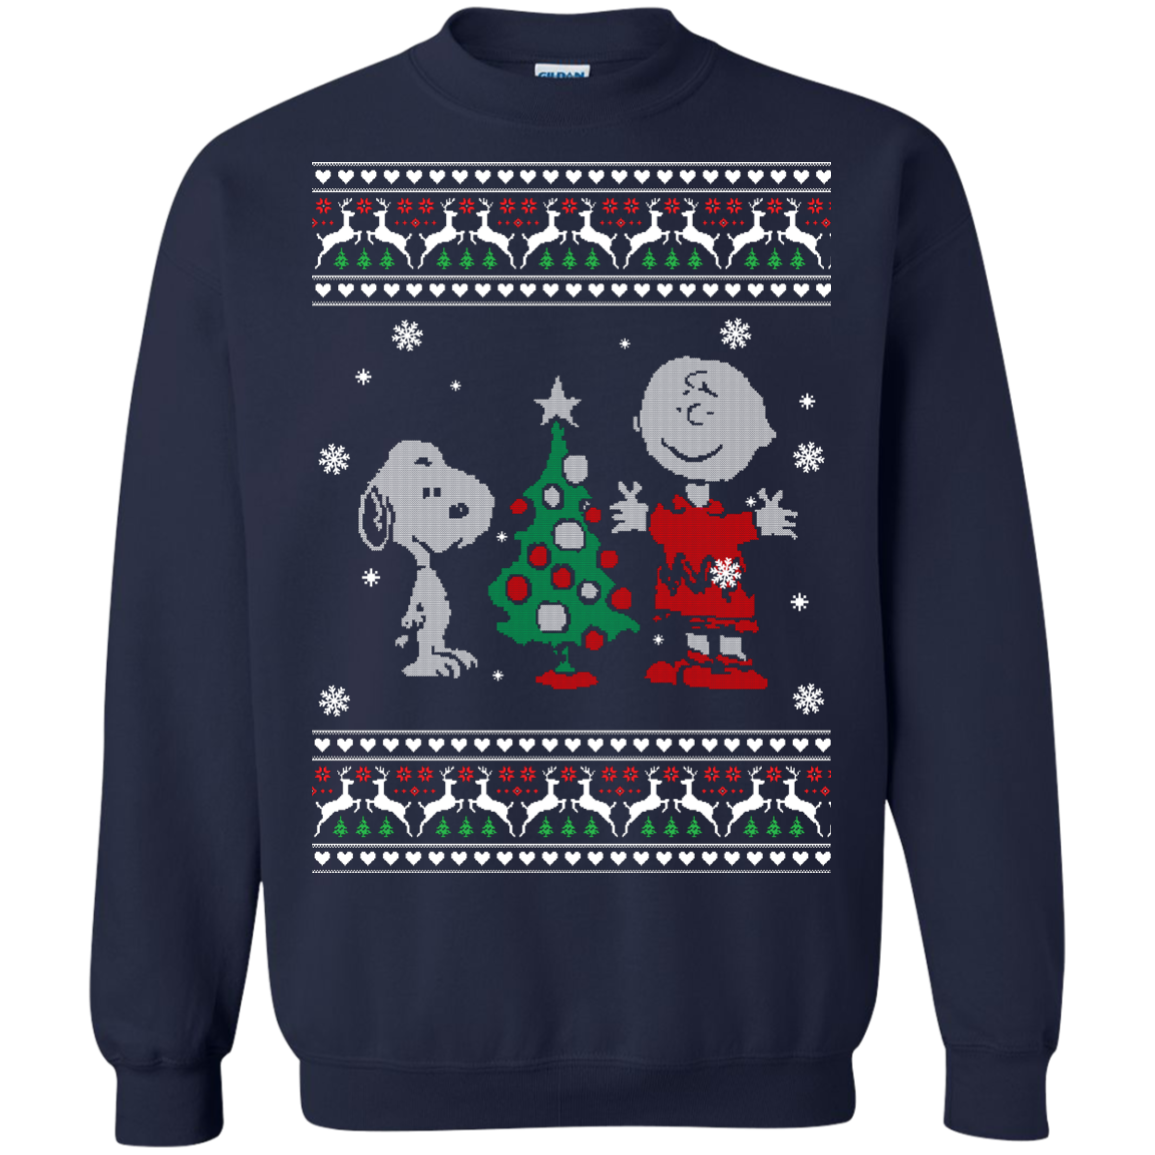 snoopy christmas sweater snoopy and peanuts christmas shirt - Snoopy Christmas Shirt